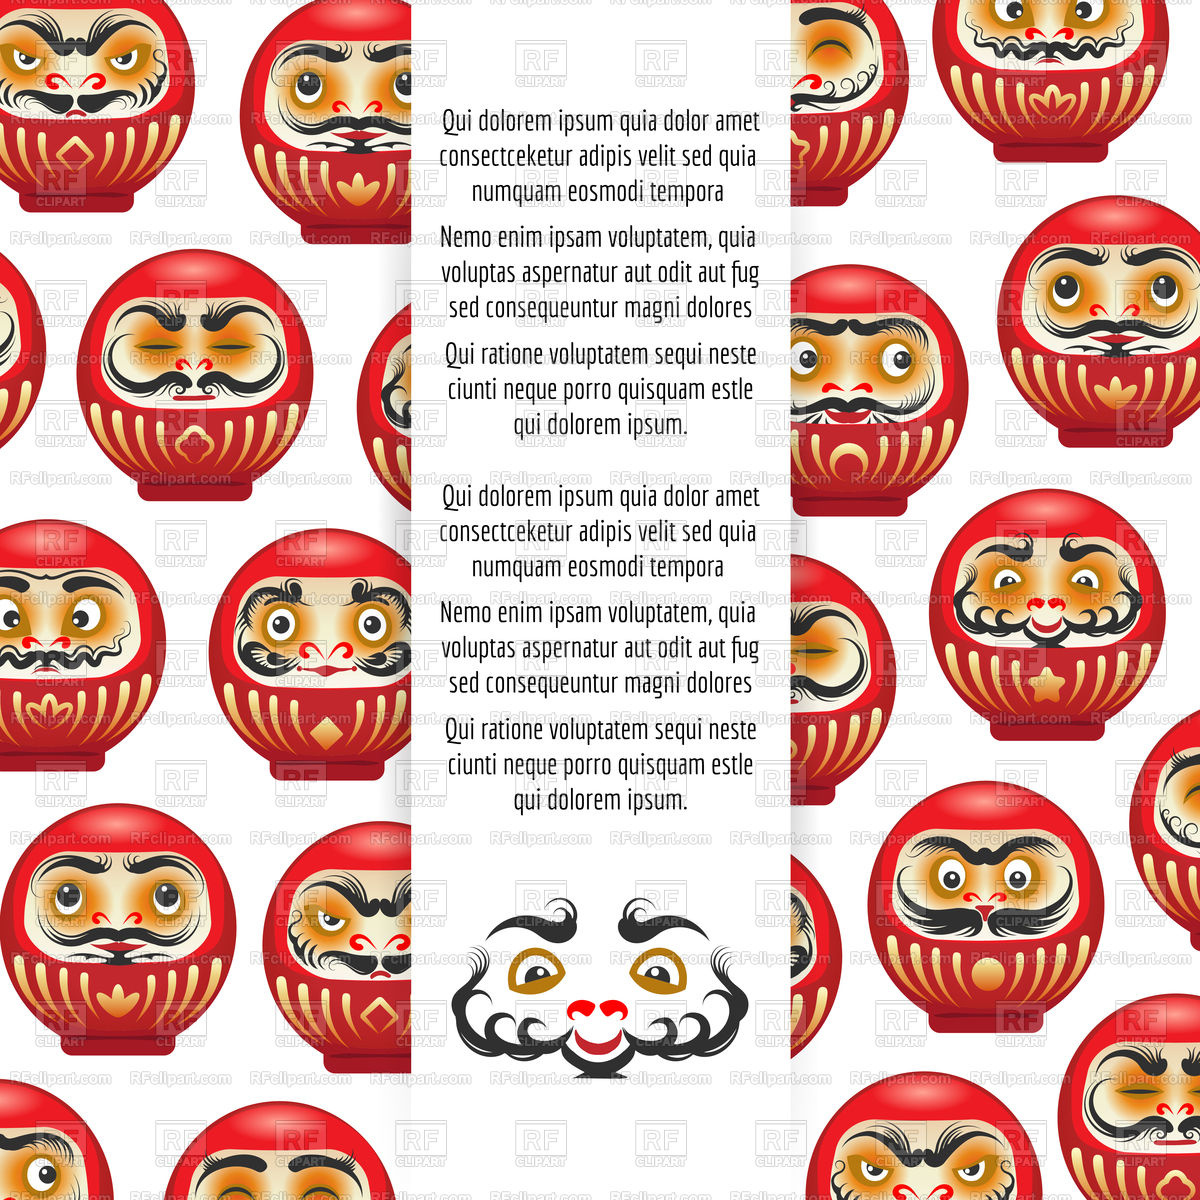 Colorful japanese daruma dolls poster Stock Vector Image.